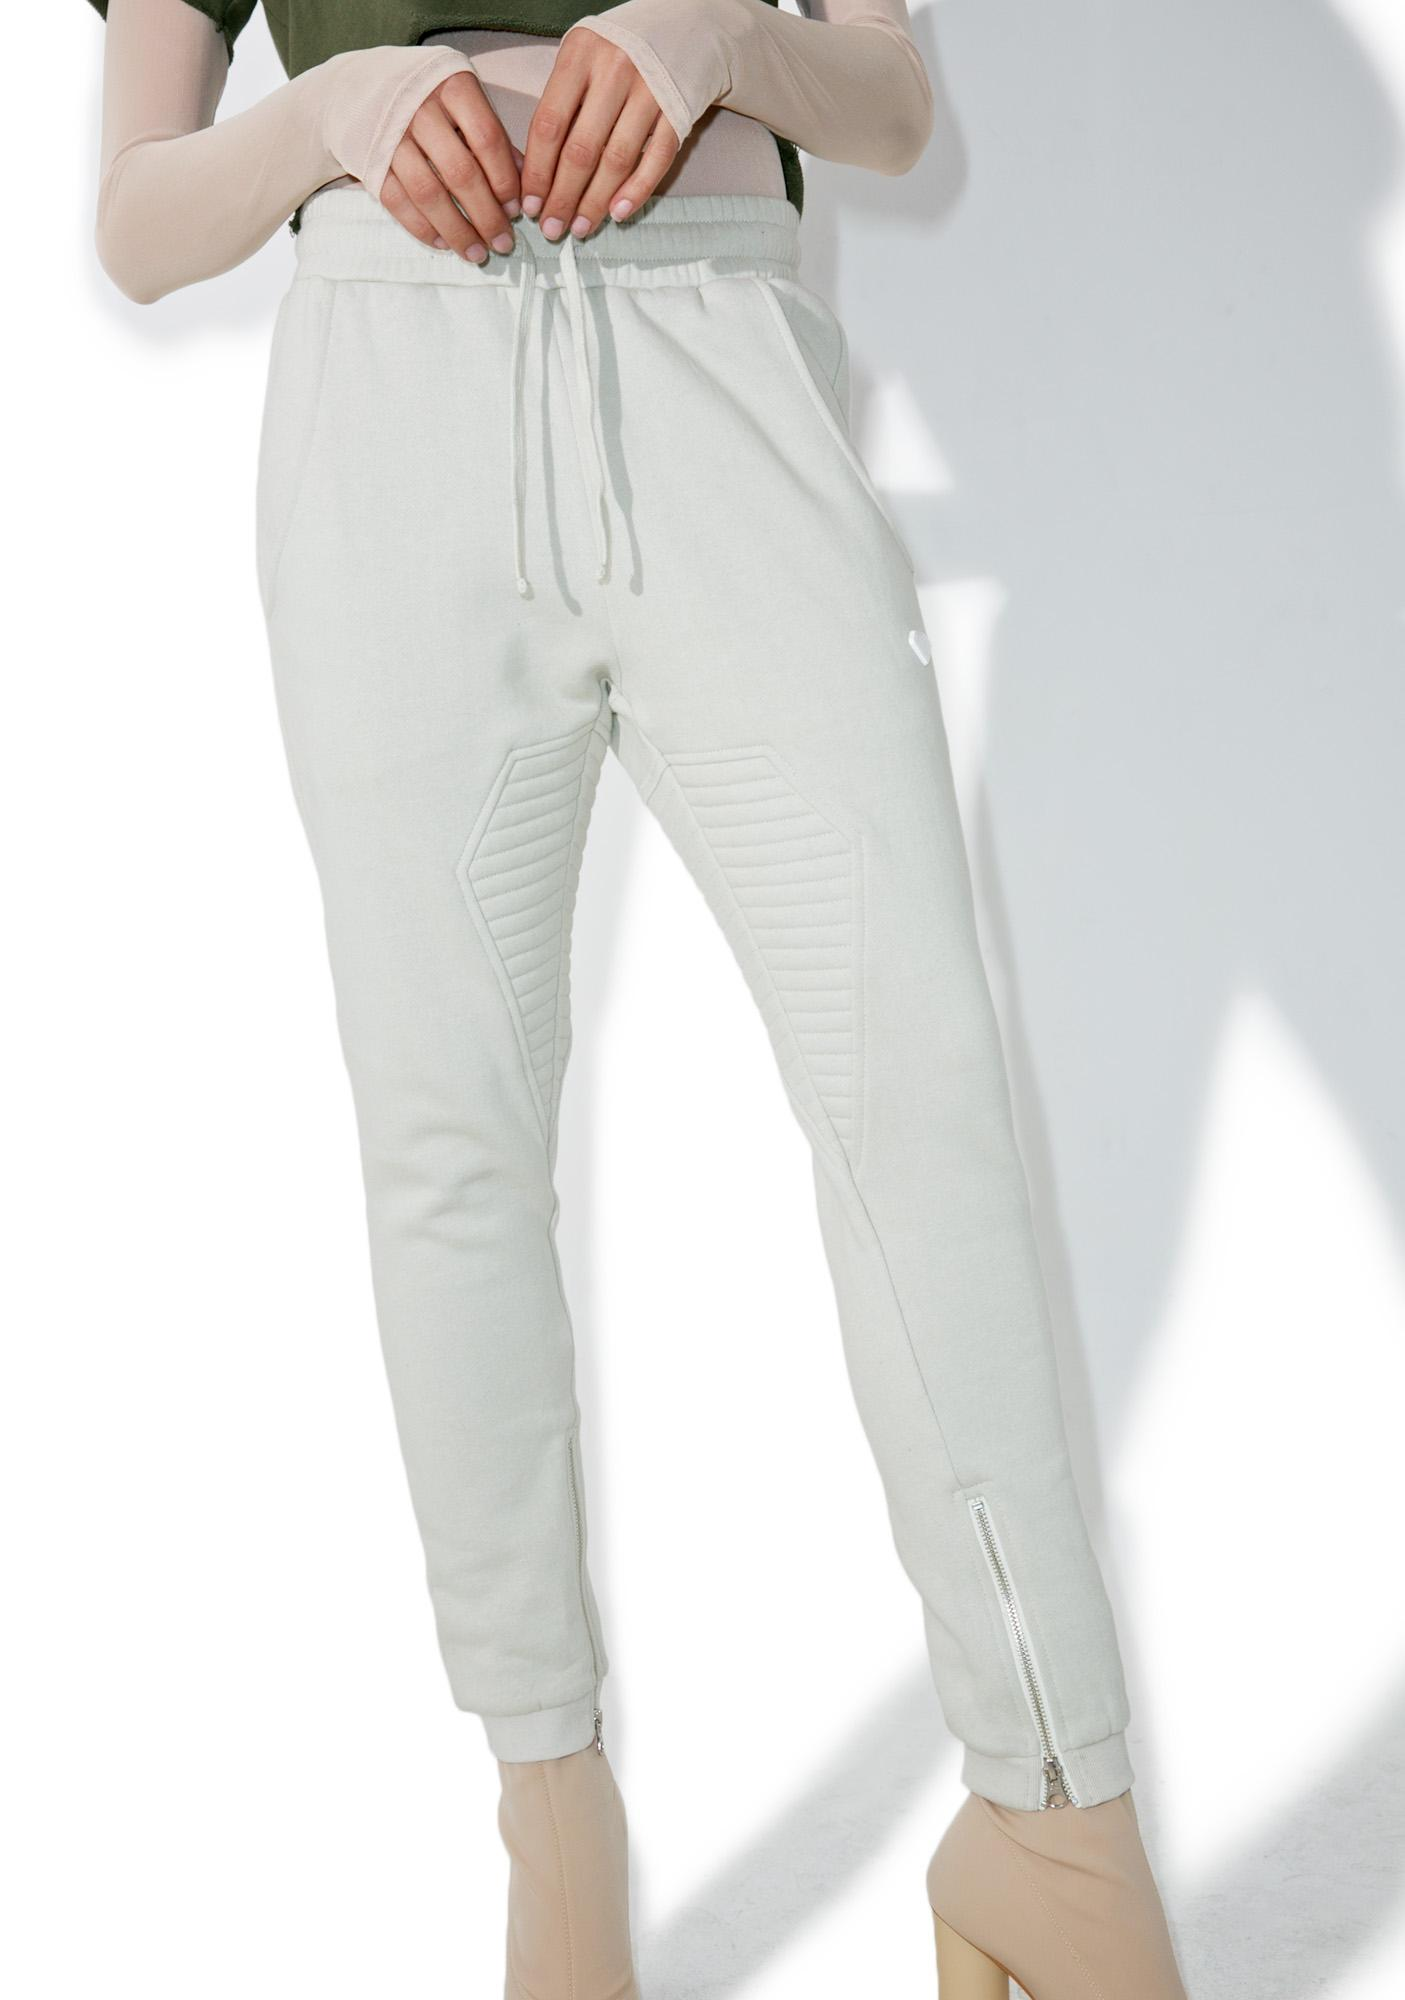 Diamond Supply All Star Sweatpants